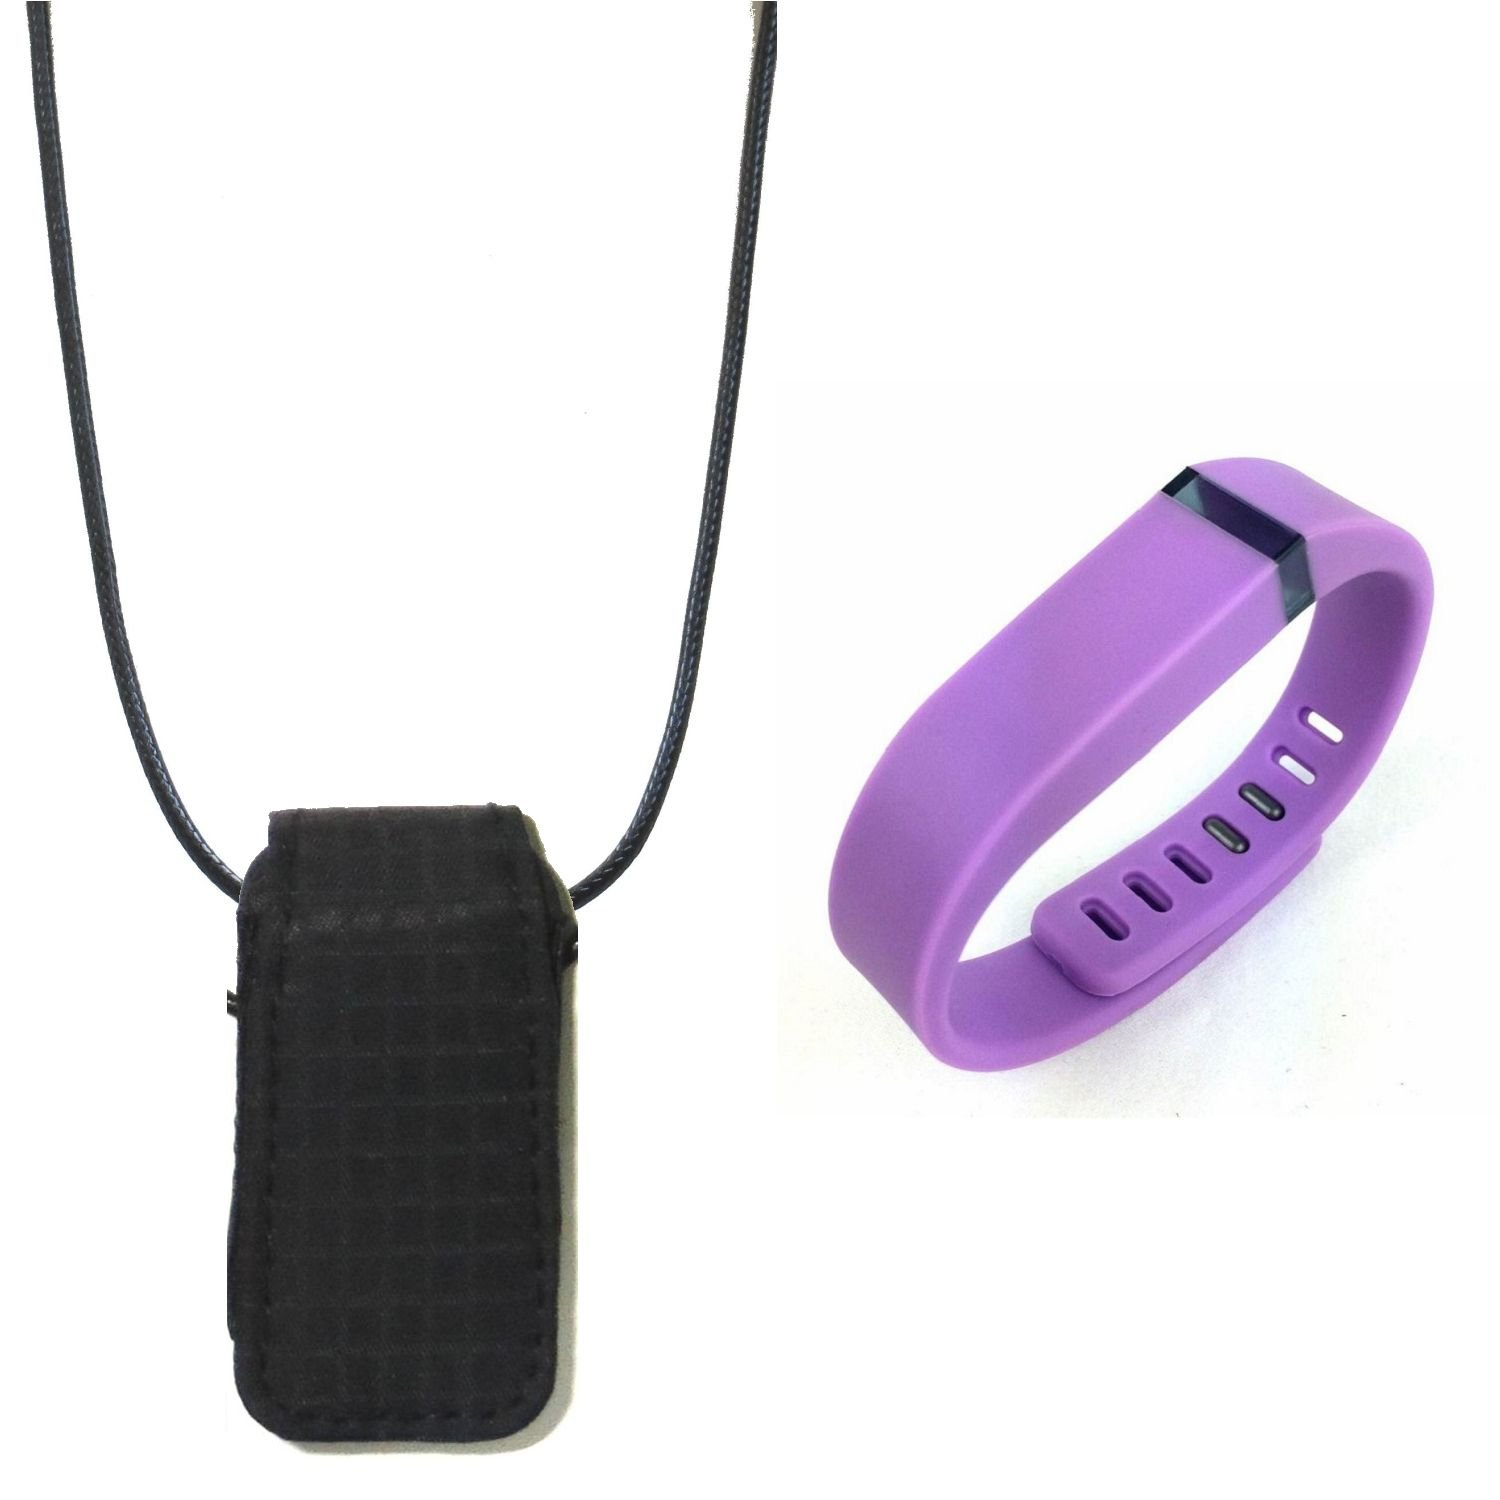 replacement band wristband for fitbit flex and Fashion fabric loop bra Pendant Necklace Holder pouch